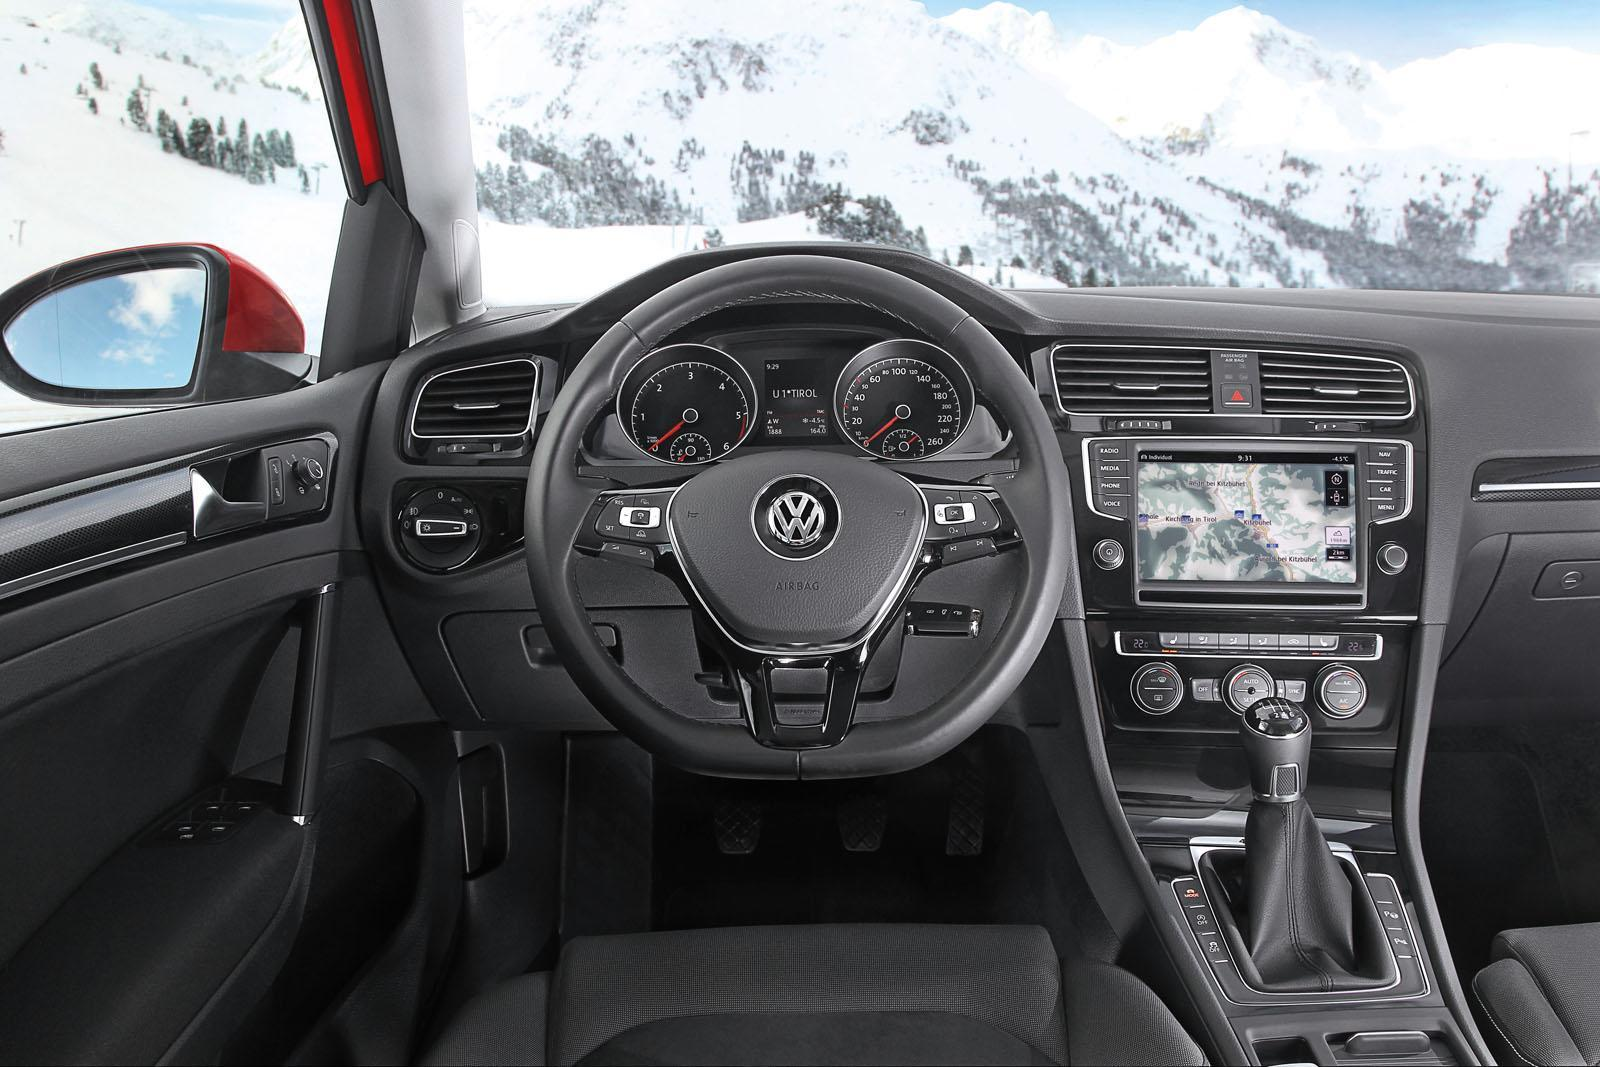 Vw golf 7 4motion 2013 la transmission 4x4 en d tails for Golf repentigny interieur